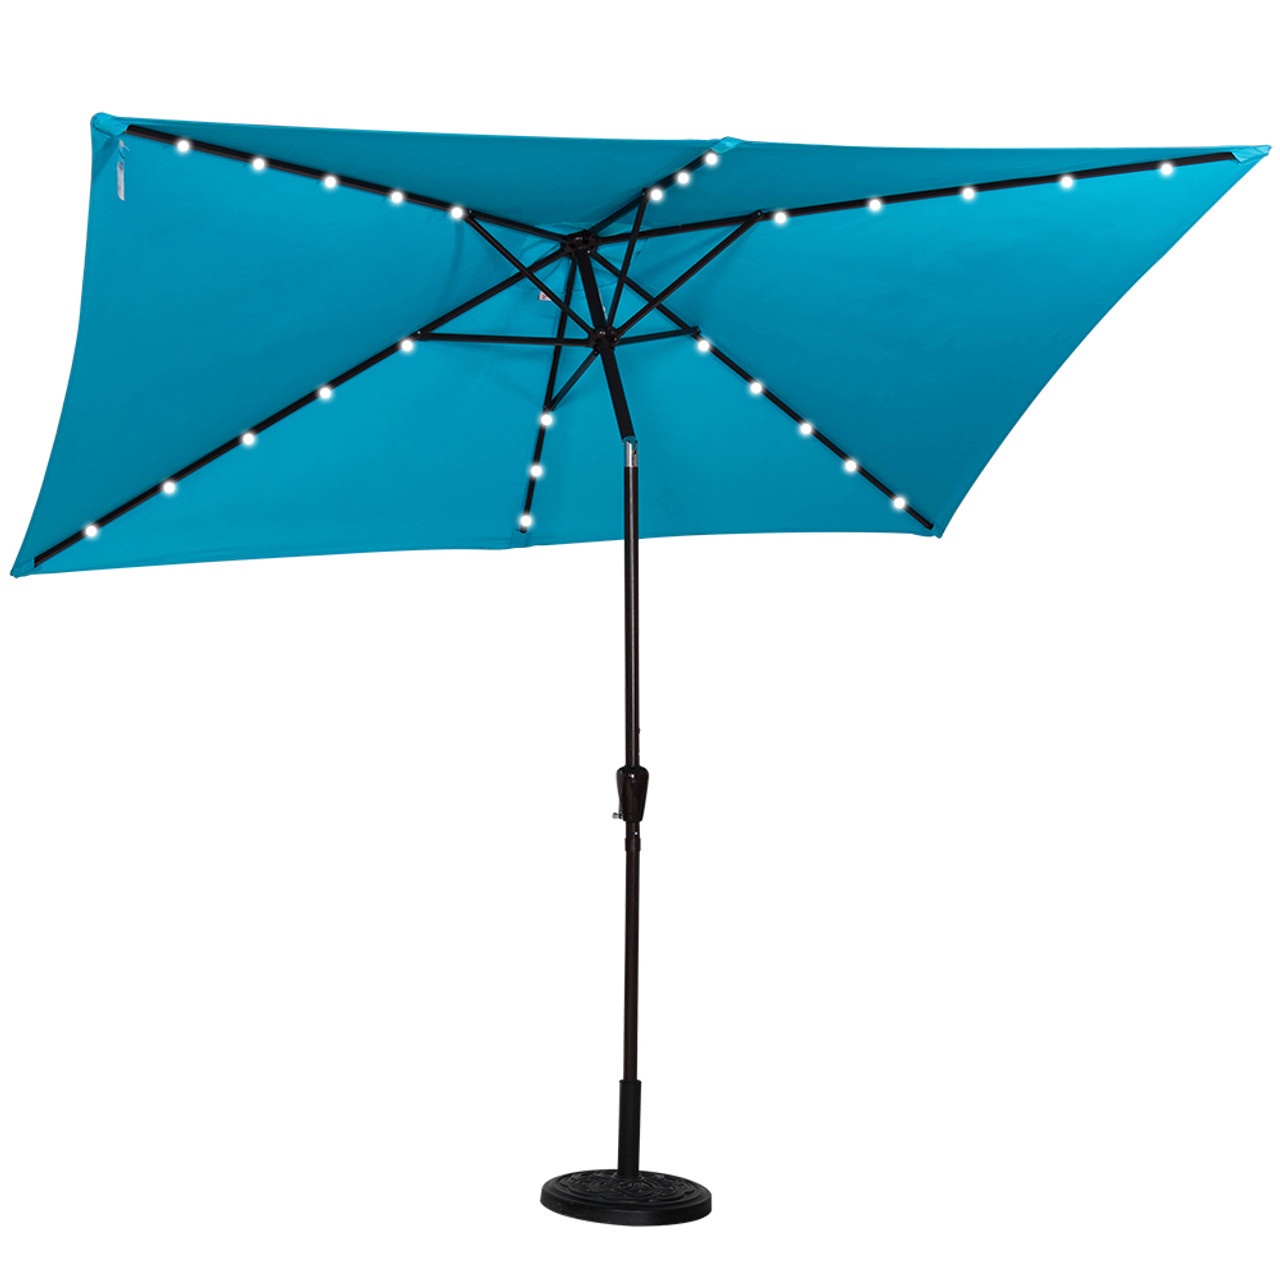 Led Patio Umbrella Reviews: Rectangular Solar Powered 26 LED Lighted Outdoor Patio